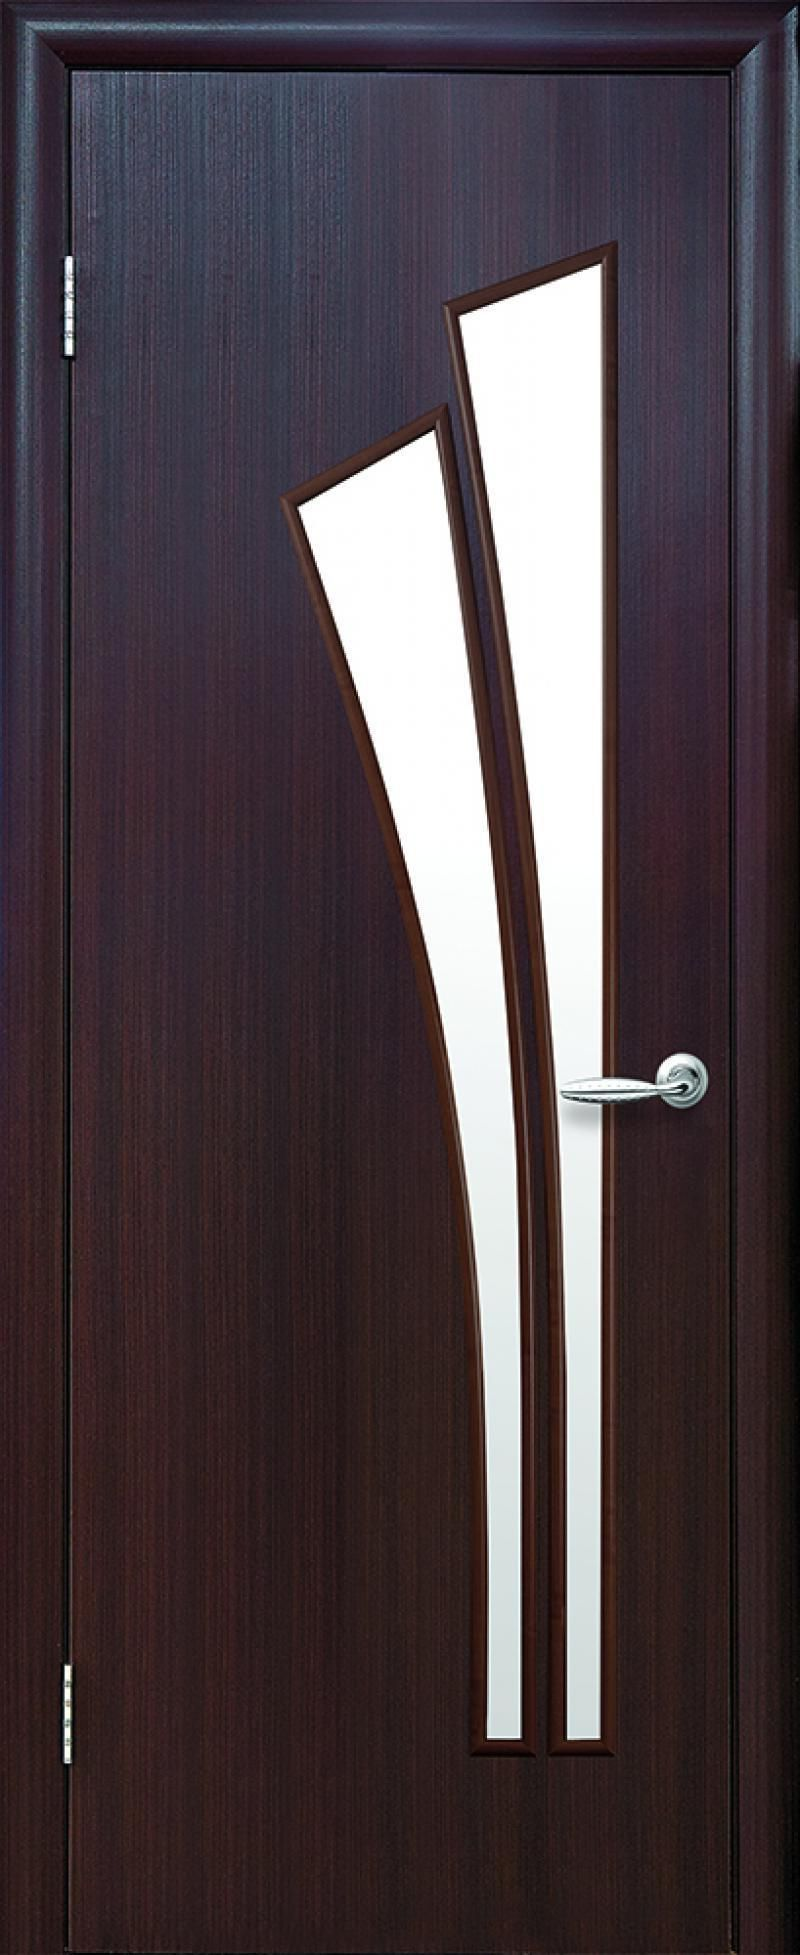 Modern interior door design for Door pattern design